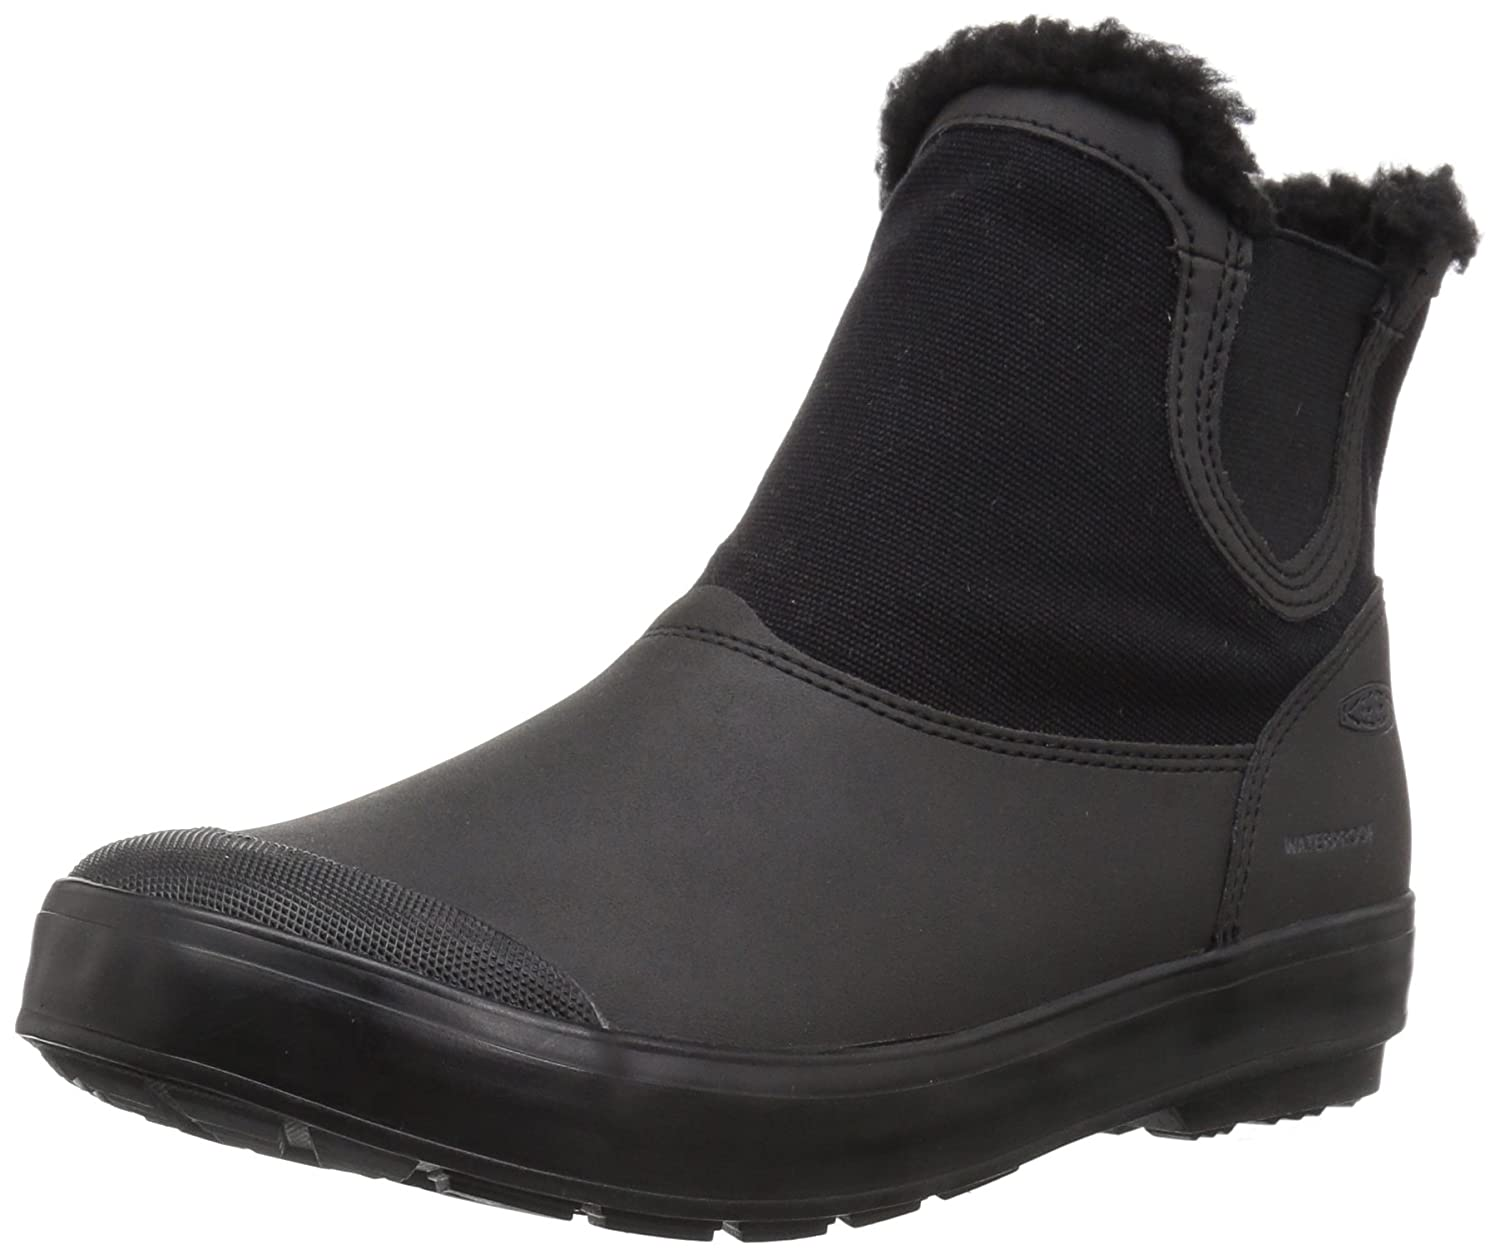 KEEN Women's Elsa Chelsea Waterproof Boot B01MTOTB80 9 B(M) US|Black/Black